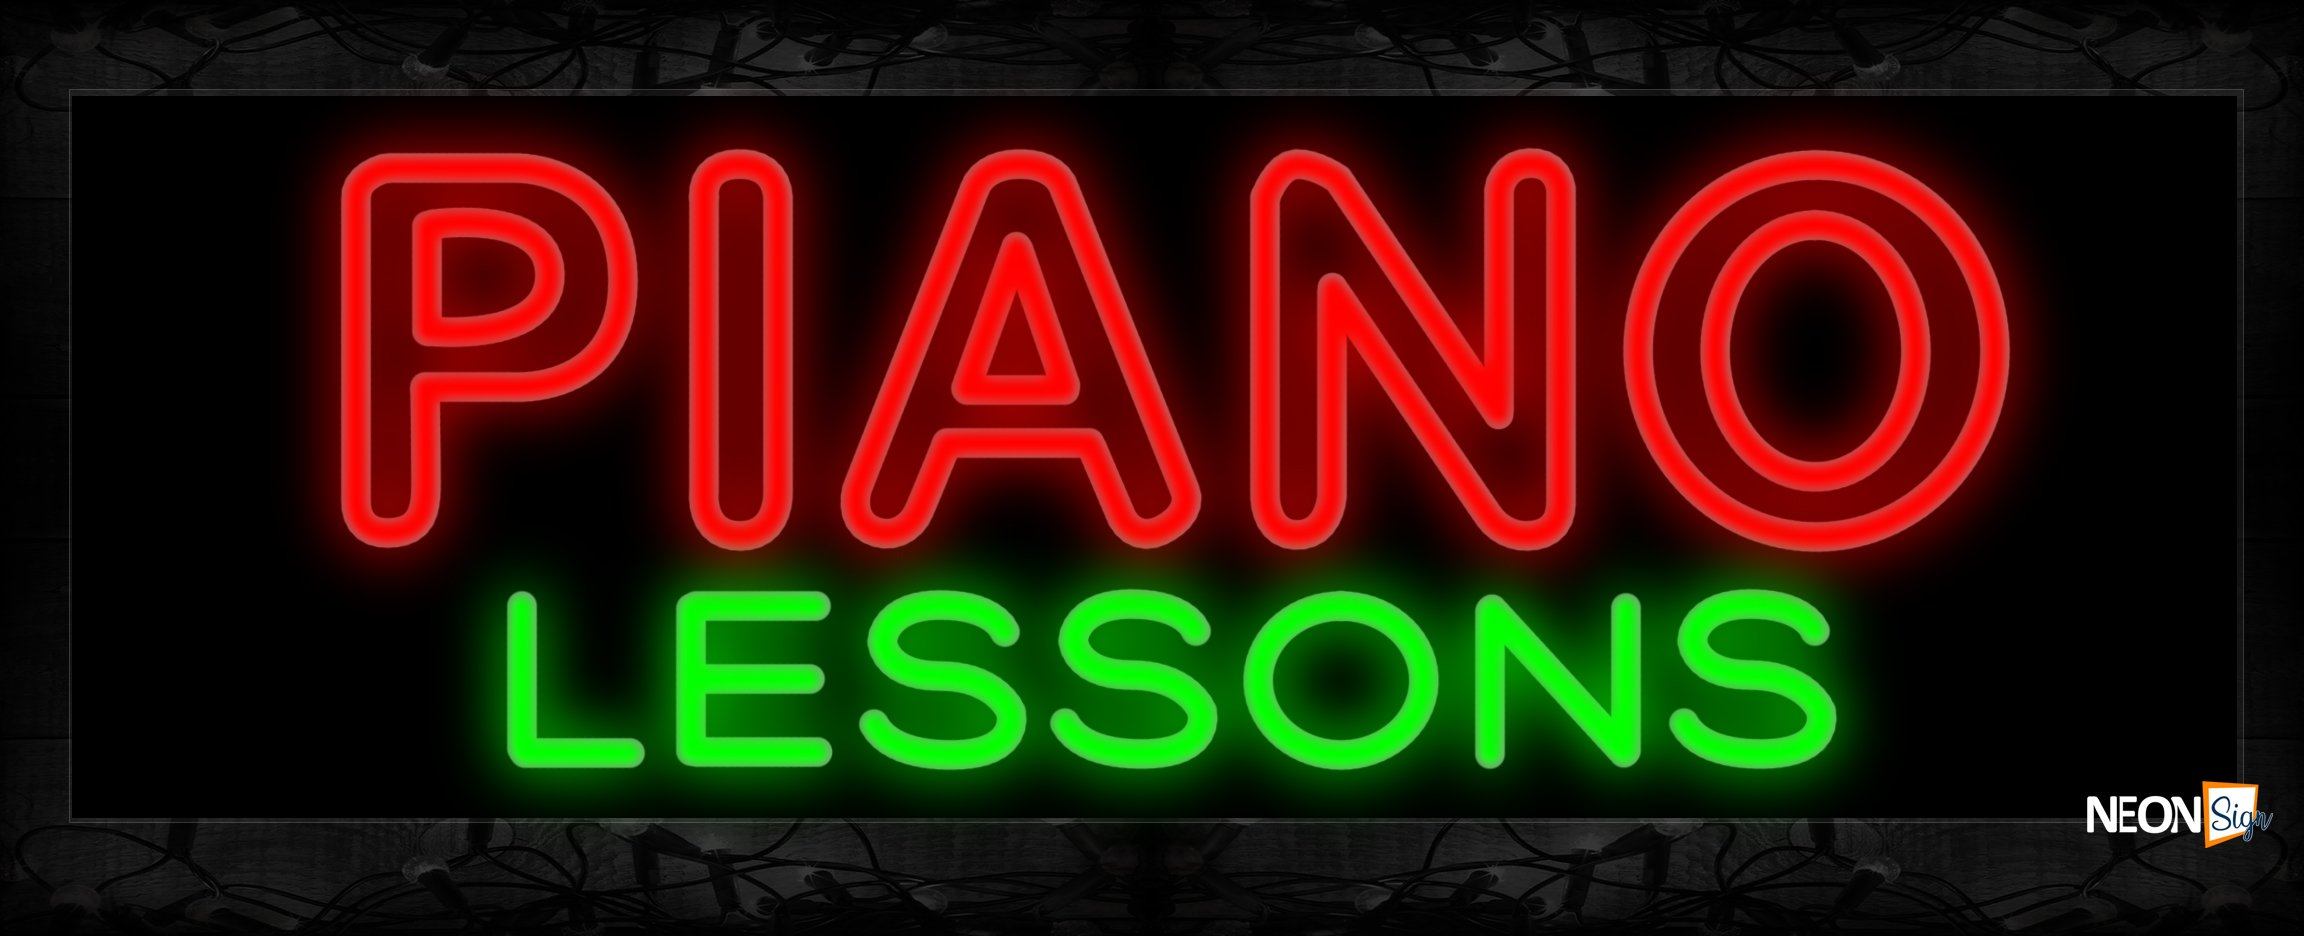 Image of 11462 Double stroke PIANO Lessons Neon Sign 13x32 Black Backing